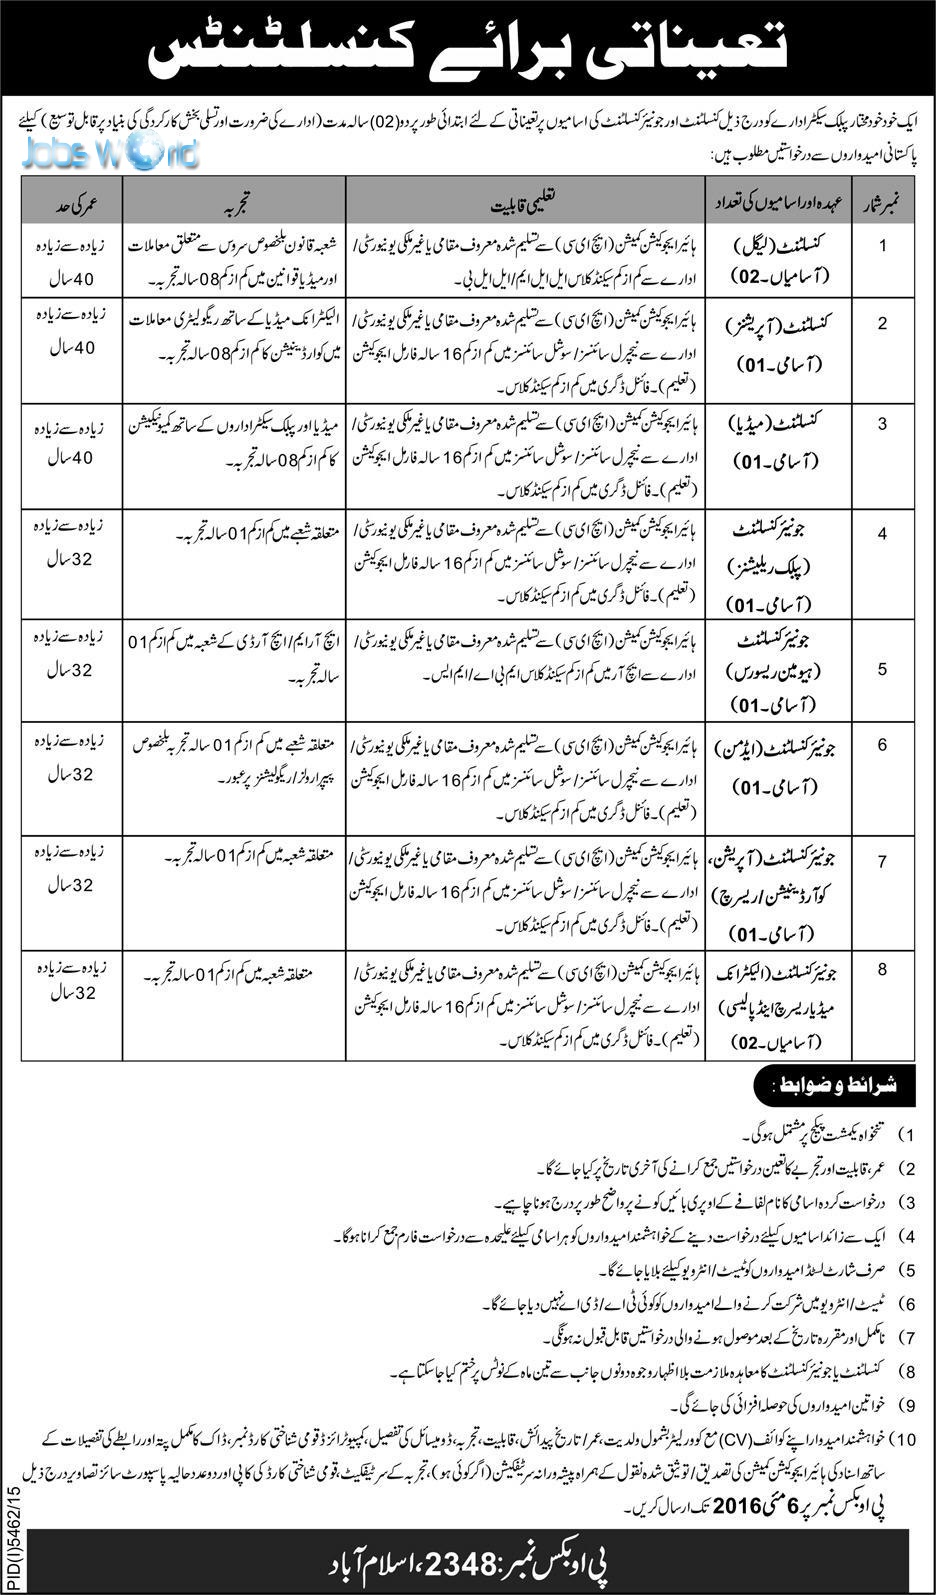 po box 2348 islamabad jobs 2016 for consultant posts jobsworld po box 2348 islamabad jobs 2016 for consultant posts